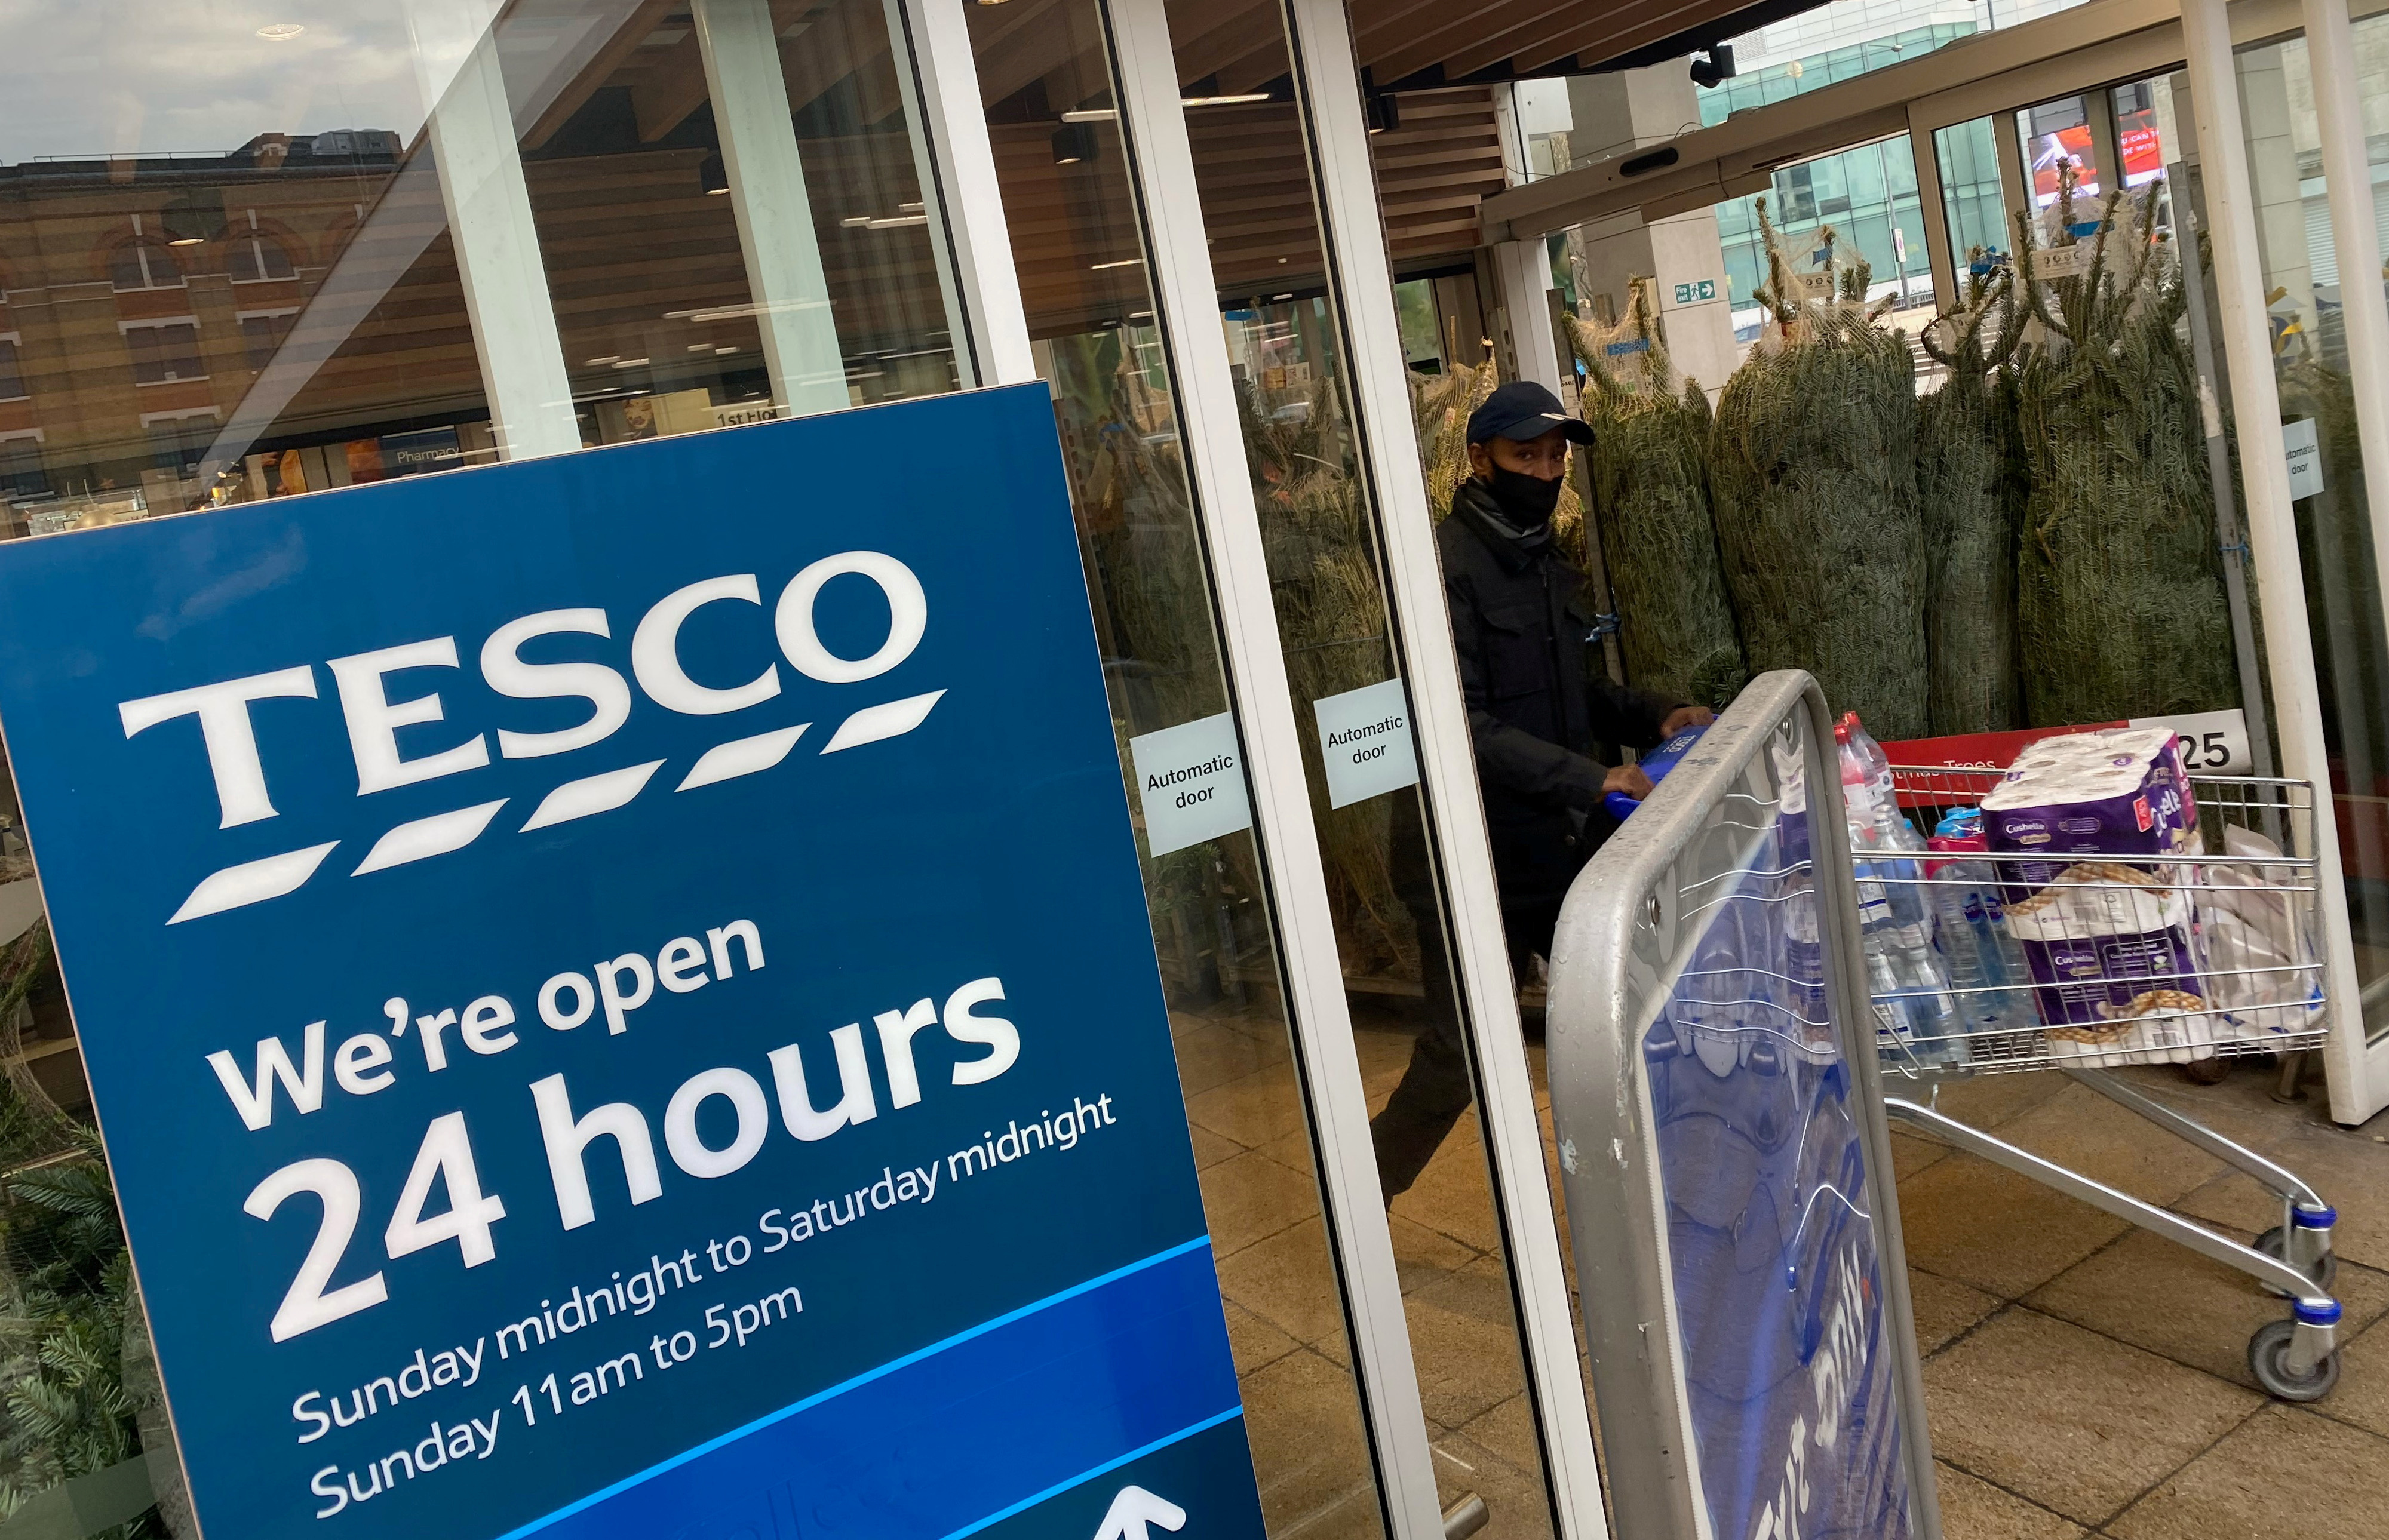 A shopper wearing a protective face-mask passes christmas trees for sale and a sign indicating 24 hour opening times at a Tesco supermarket amid the spread of the coronavirus disease (COVID-19), London, Britain, December 6, 2020. REUTERS/Toby Melville/File Photo